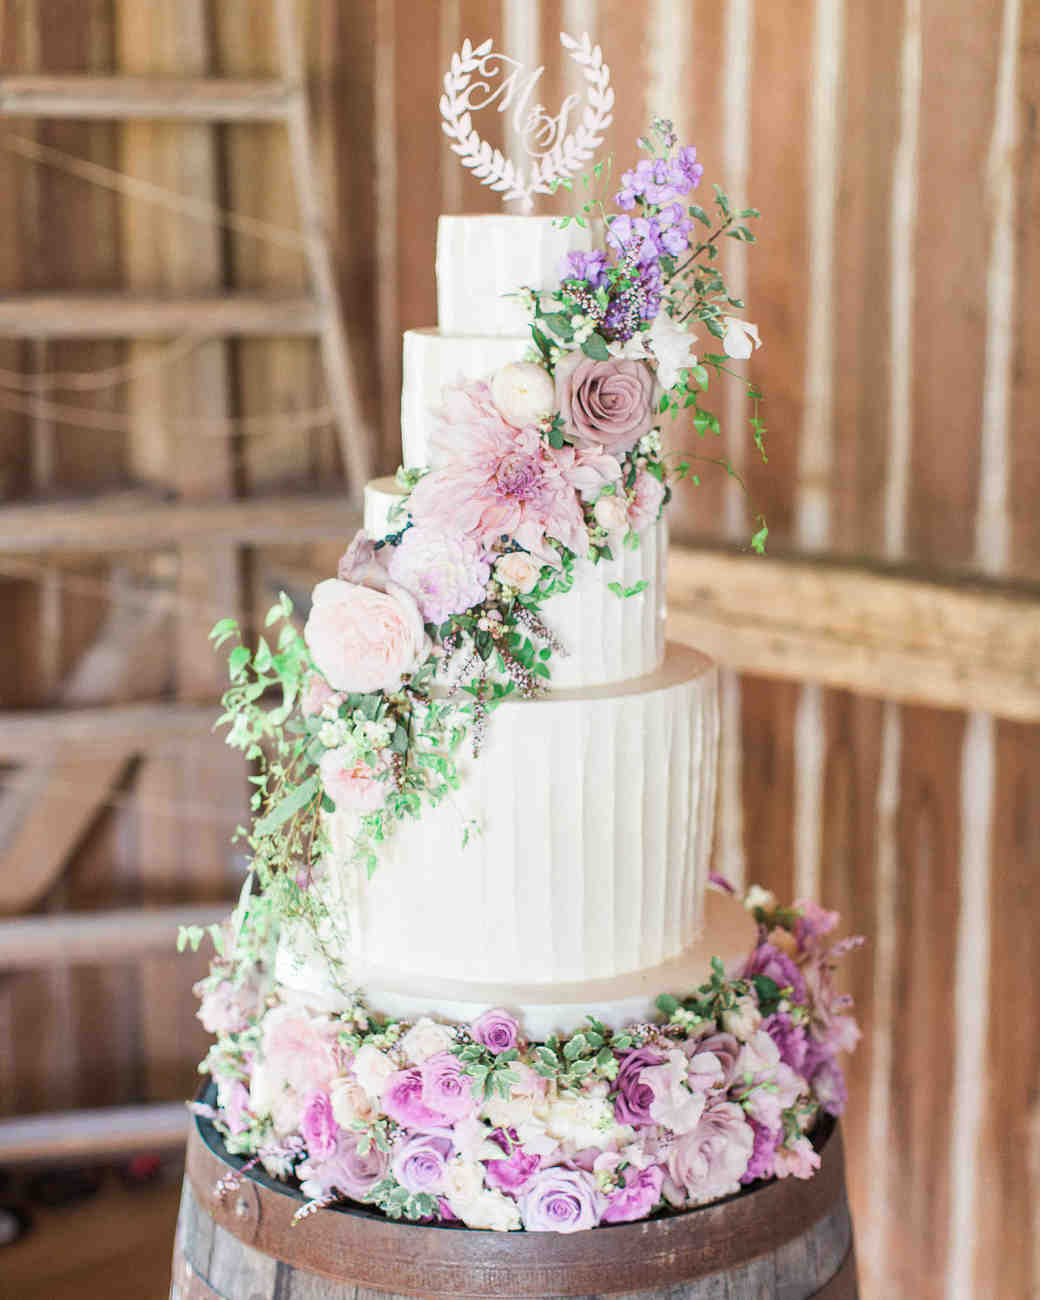 White Wedding Cake with Pink and Purple Flowers